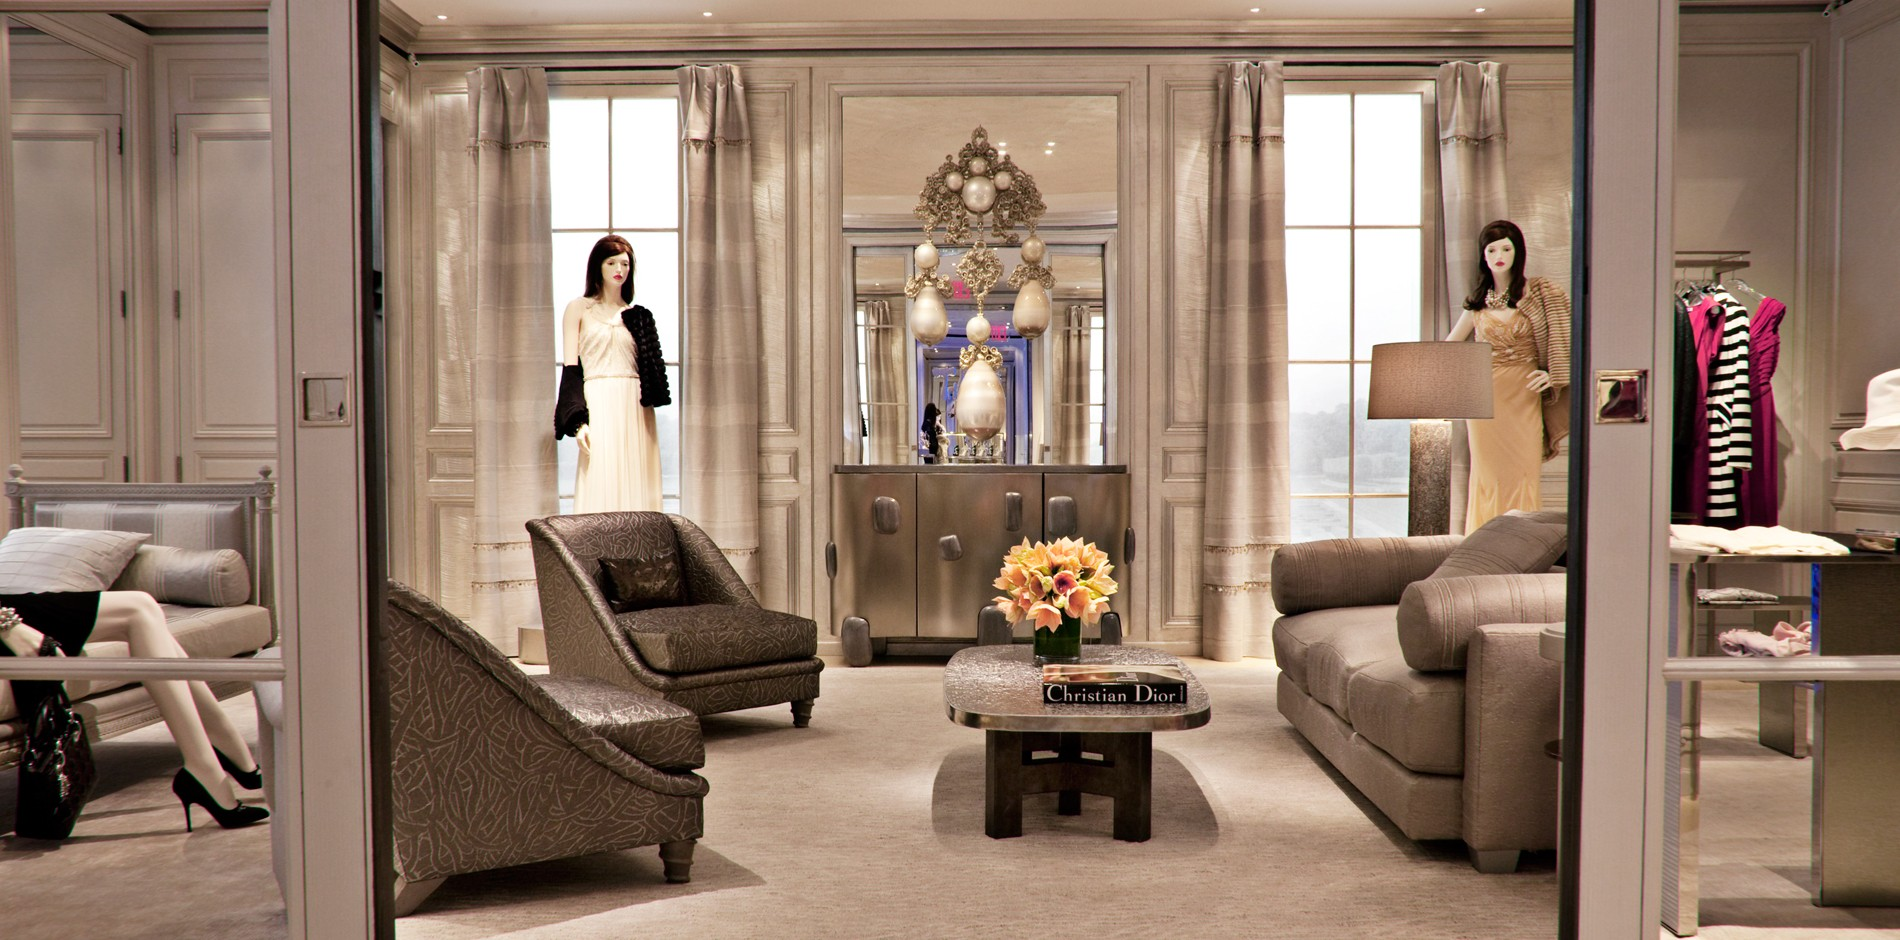 Christian Dior Flagship Store New York City Fit Out